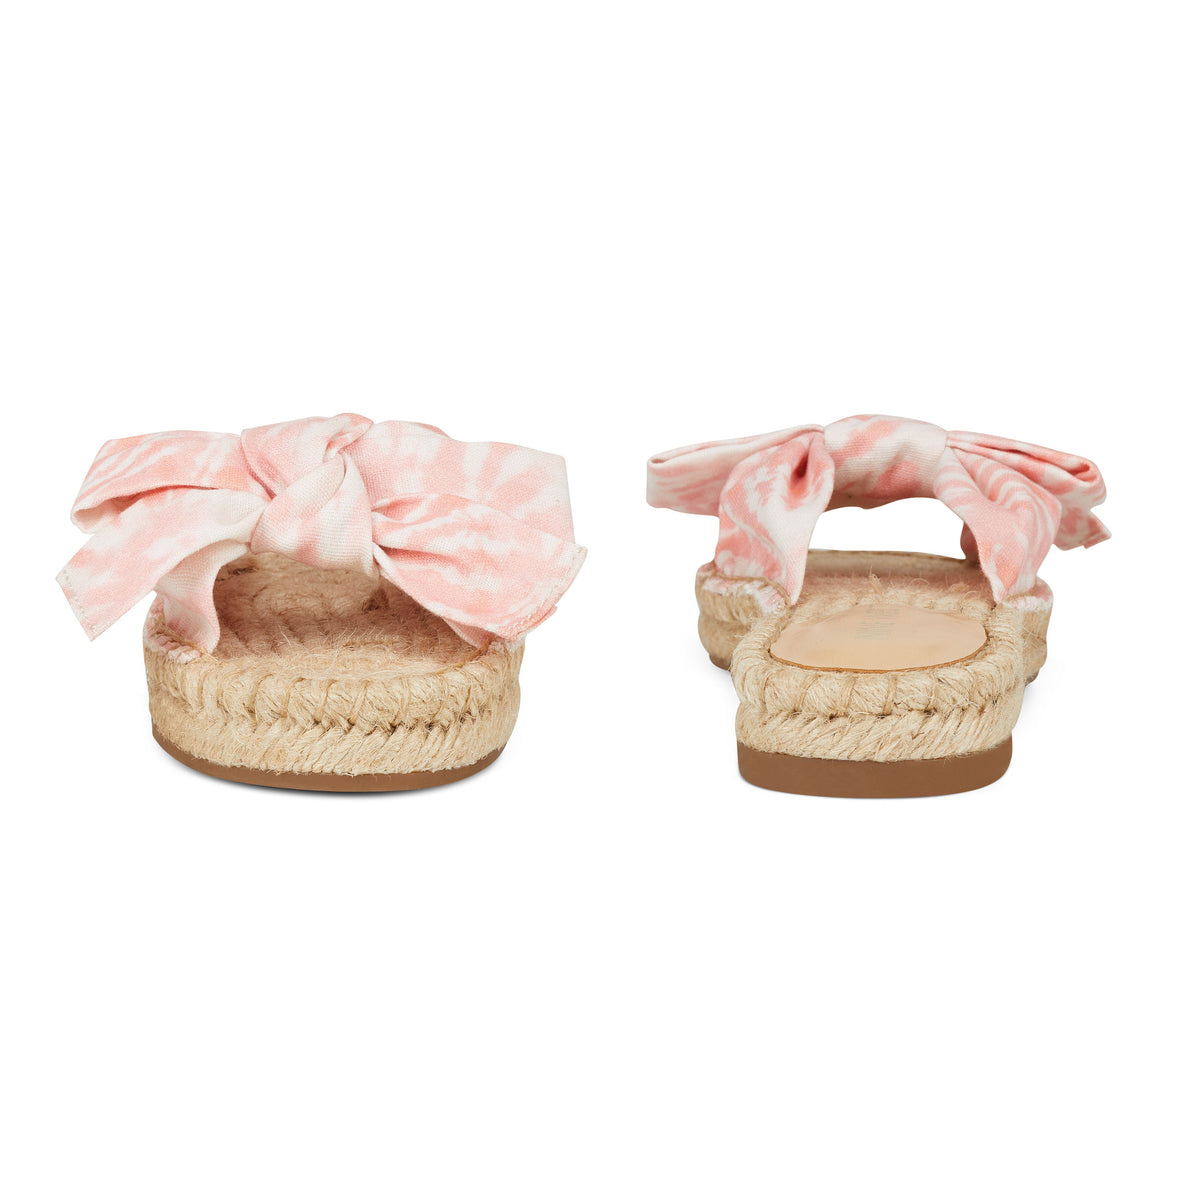 blanche-espadrille-slide-sandals-in-medium-pink